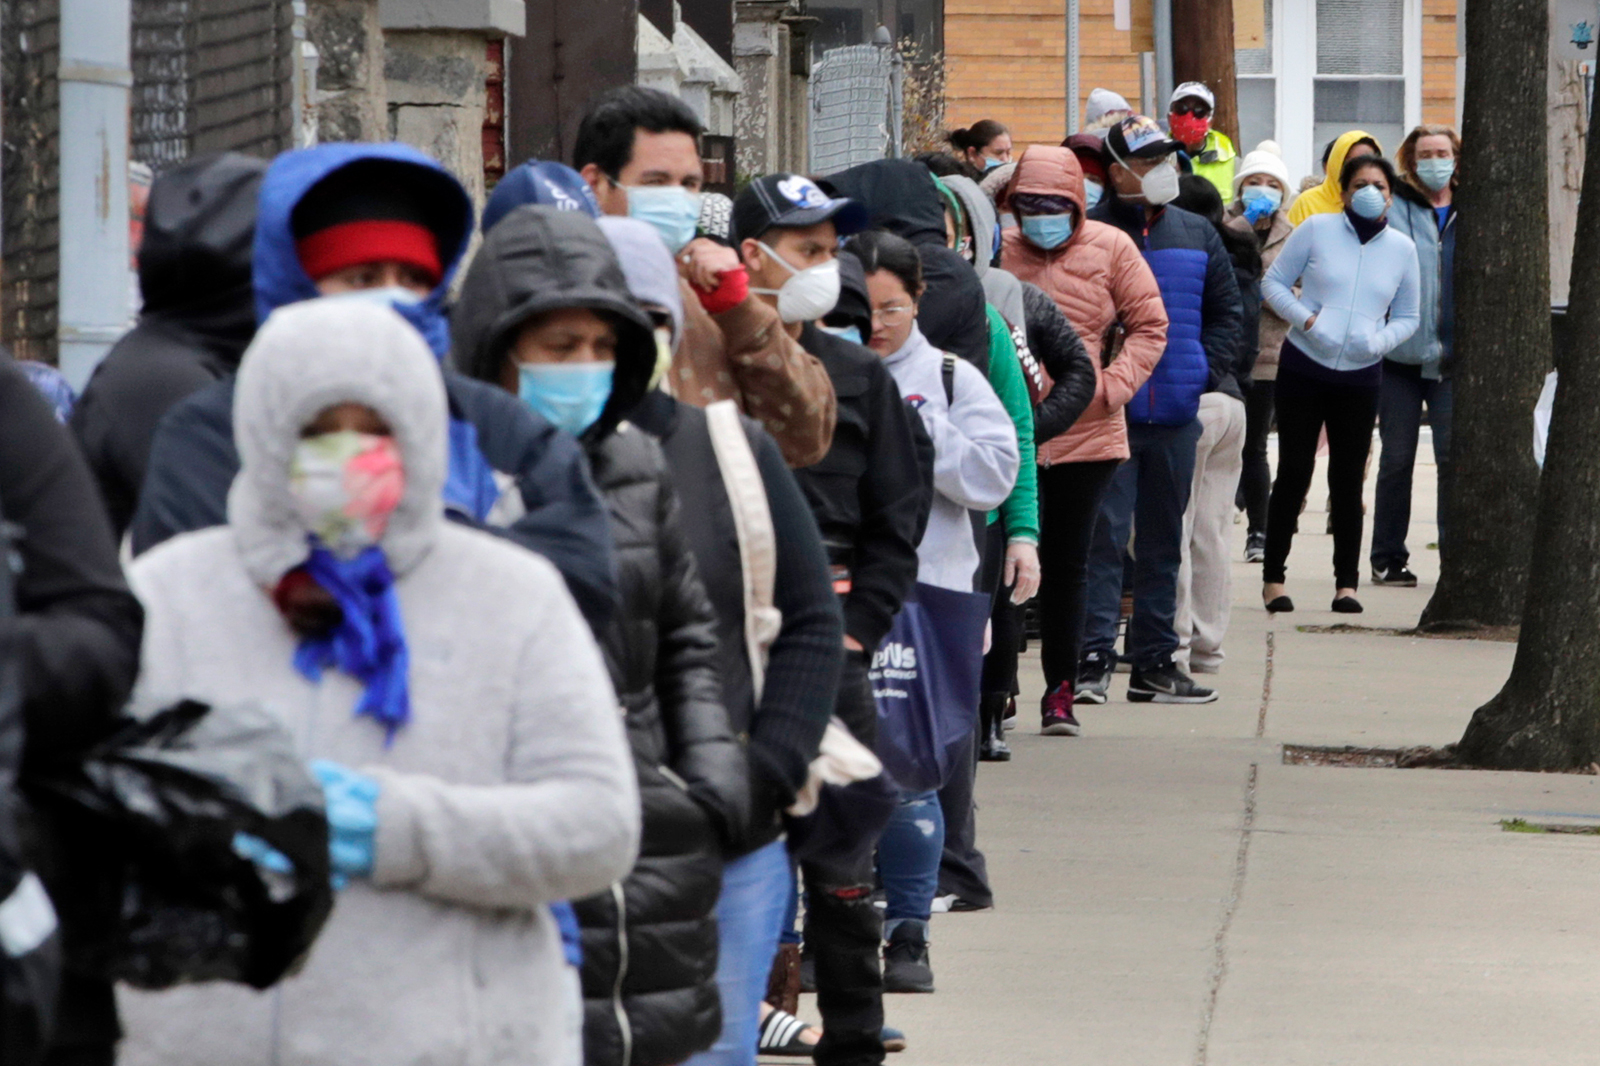 Hundreds impacted by the Covid-19 virus outbreak wait in line for boxes of food at a Salvation Army center in Chelsea, Mass., on April 22.